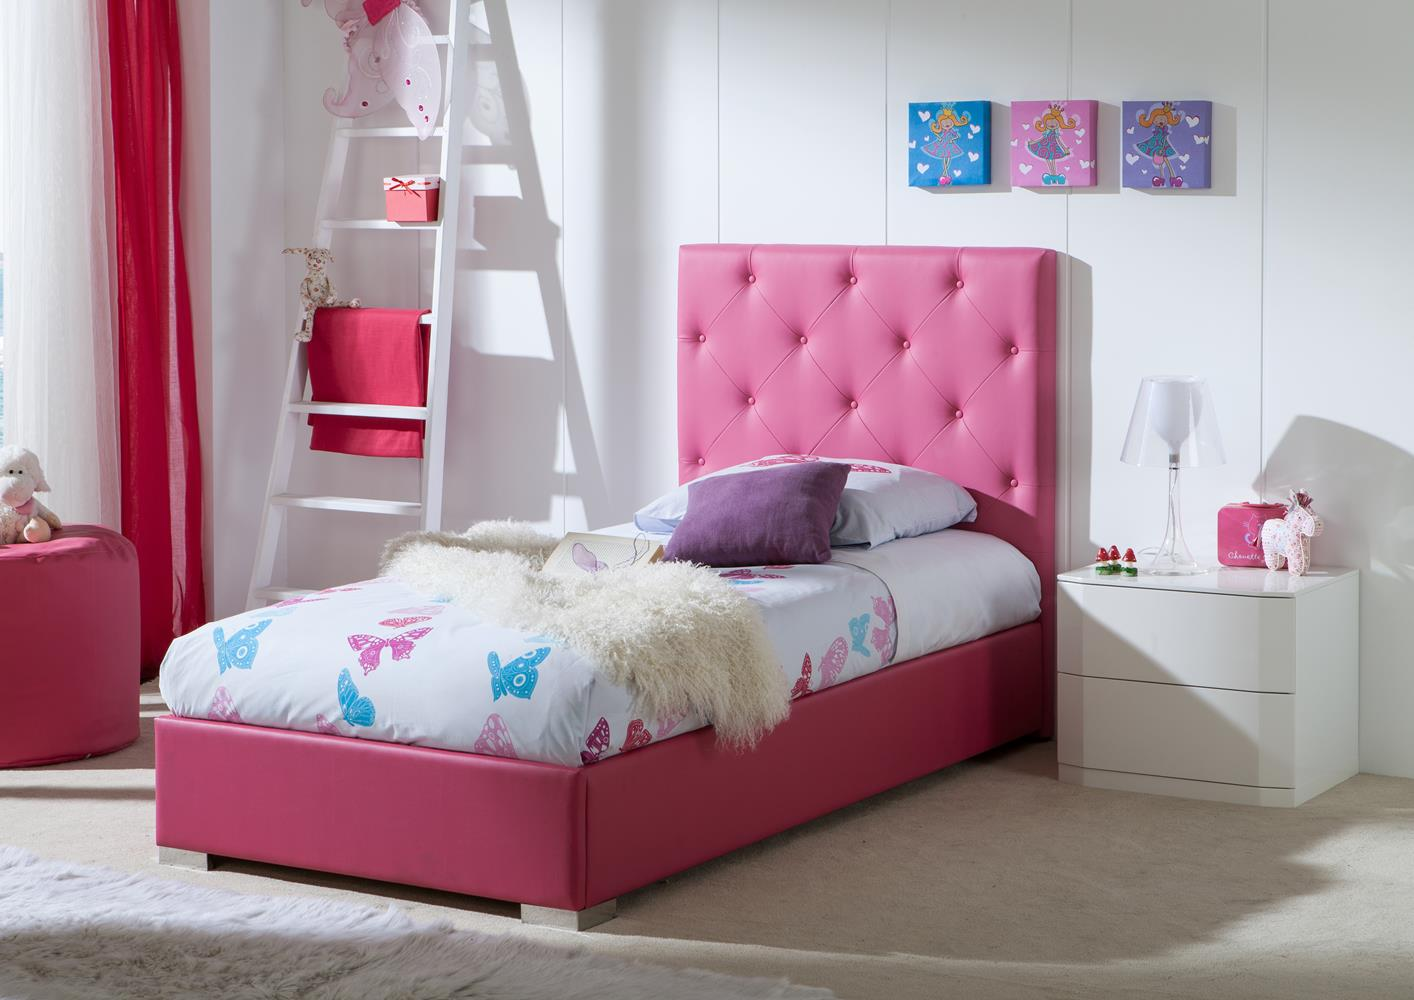 acheter votre lit contemporain fuscia capitonn e avec coffre chez simeuble. Black Bedroom Furniture Sets. Home Design Ideas